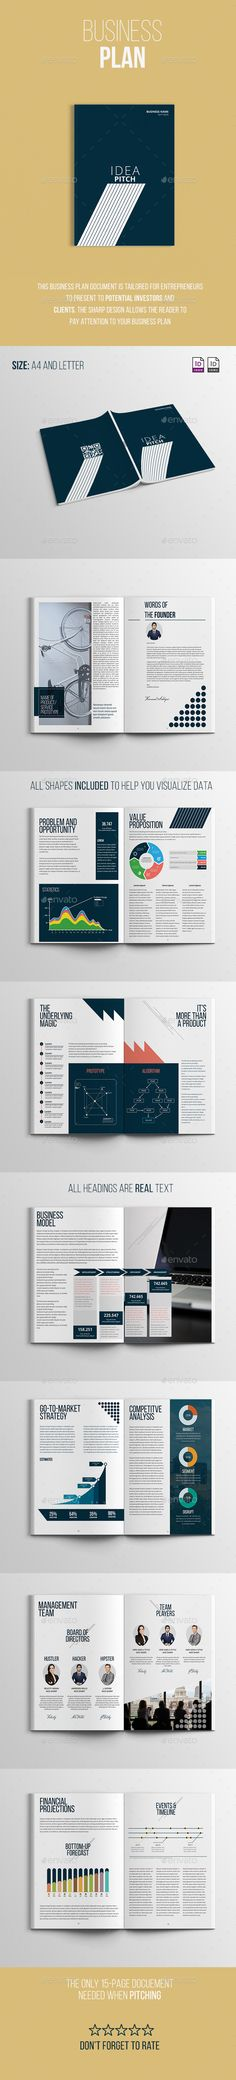 Professional Business Plan Template  Miscellaneous Print